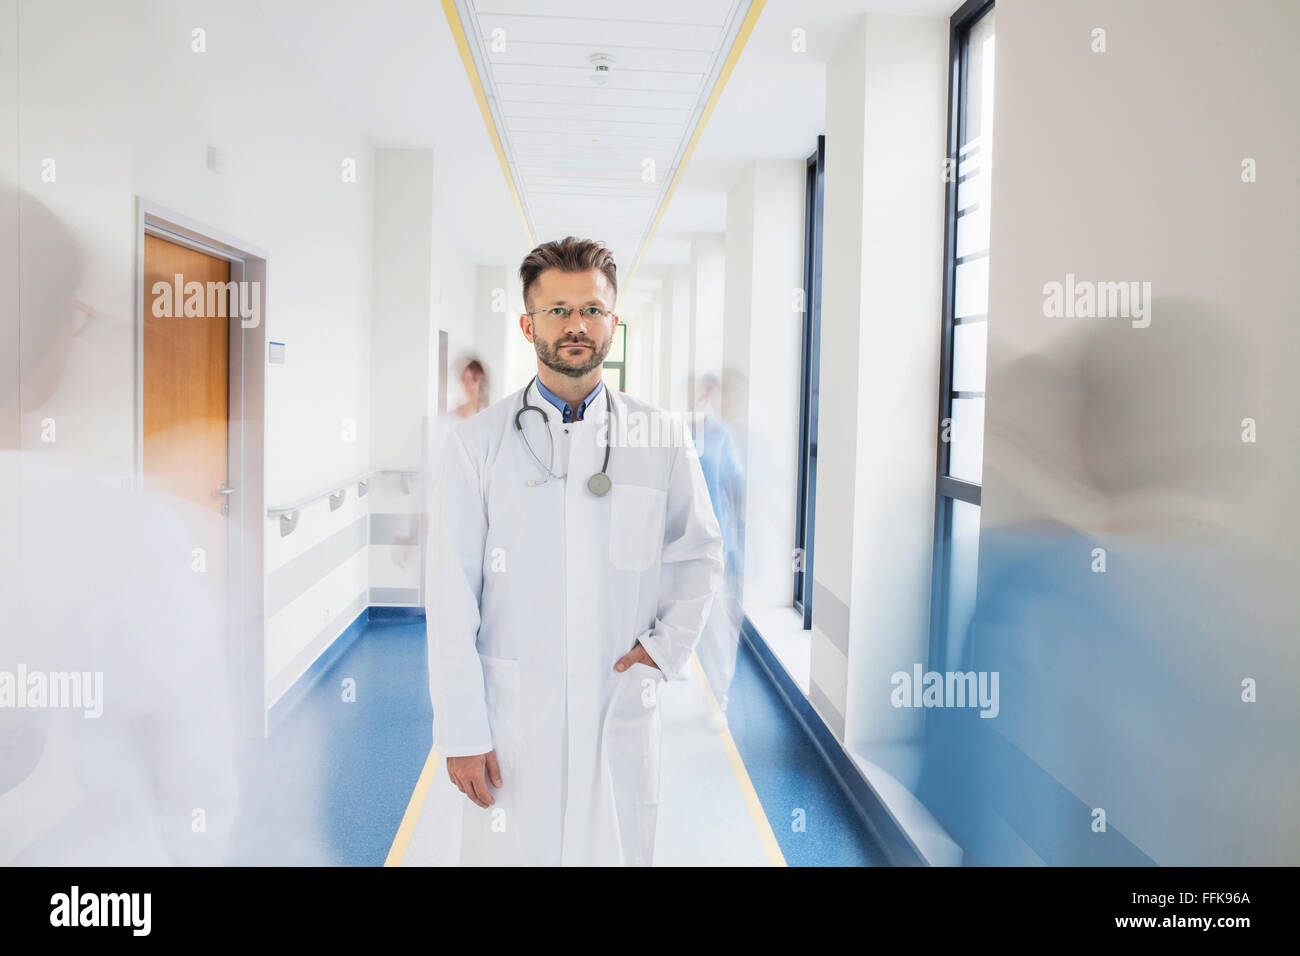 Doctor standing in corridor of medical clinic - Stock Image